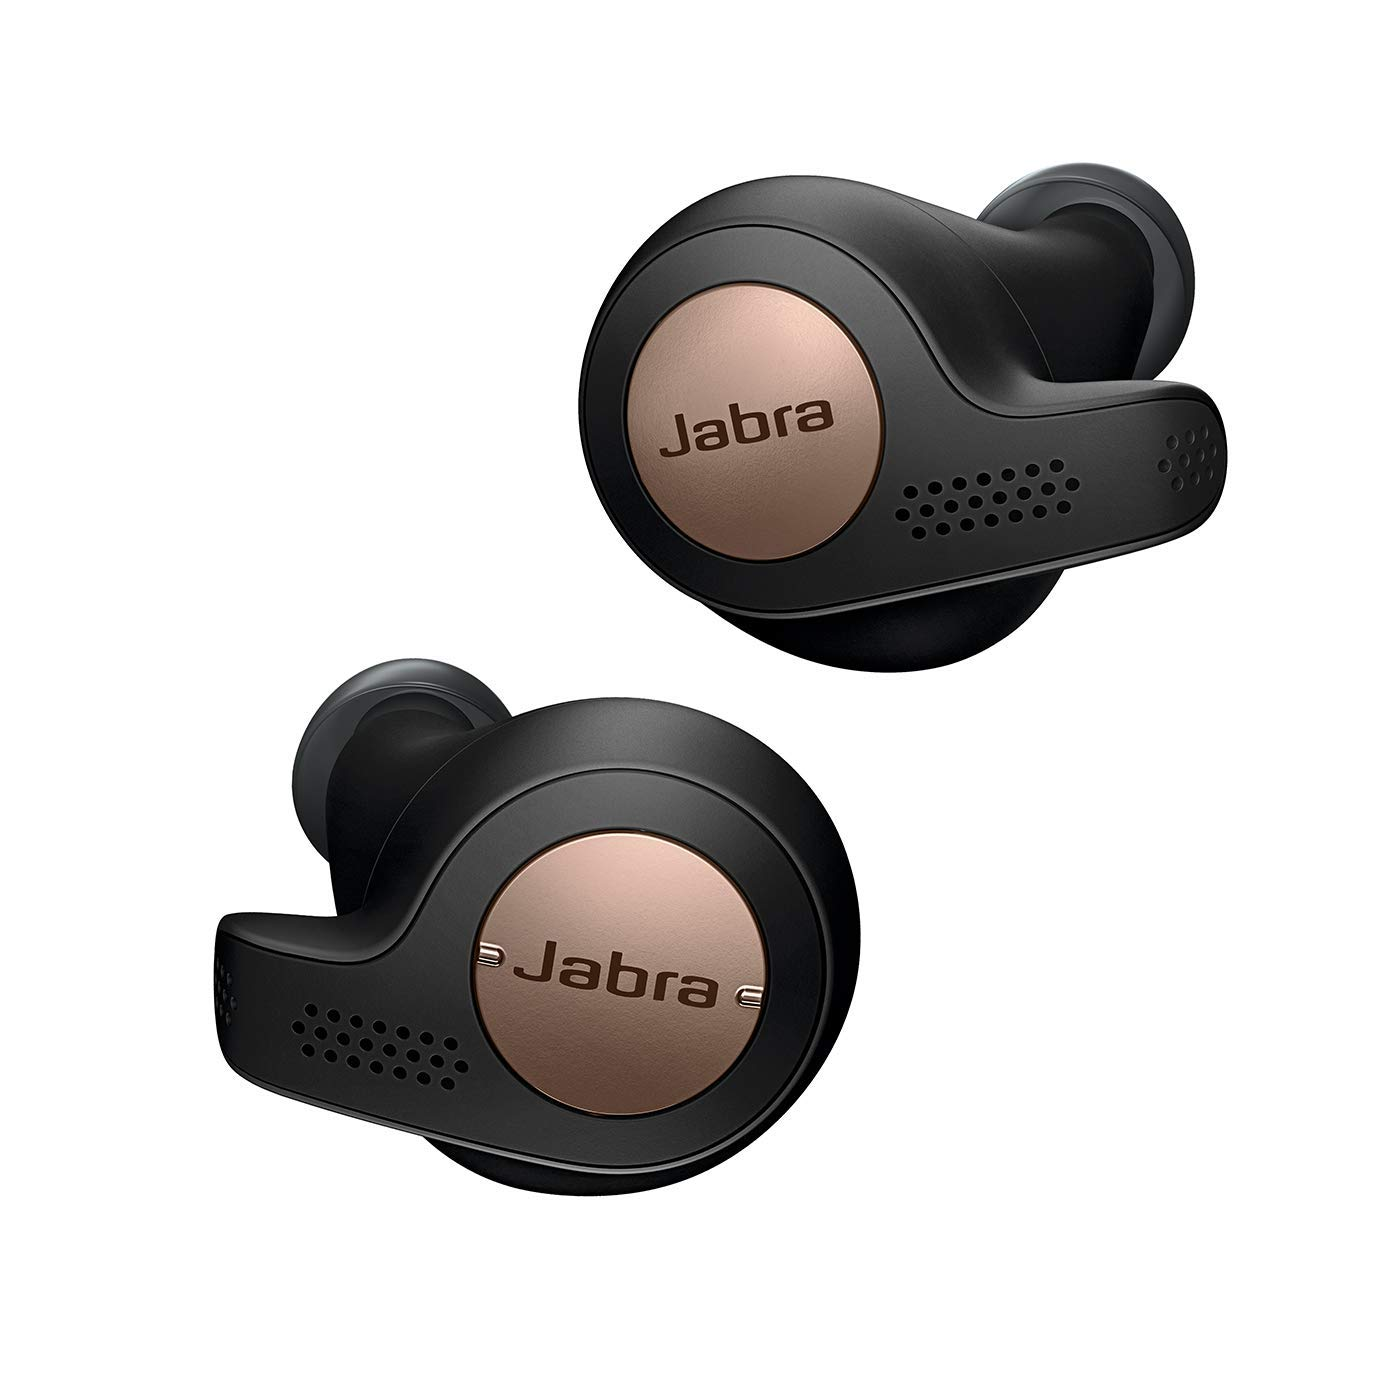 Amazon Com Jabra Elite Active 65t Earbuds True Wireless Earbuds With Charging Case Copper Black Bluetooth Earbuds With A Secure Fit And Superior Sound Long Battery Life And More Renewed Home